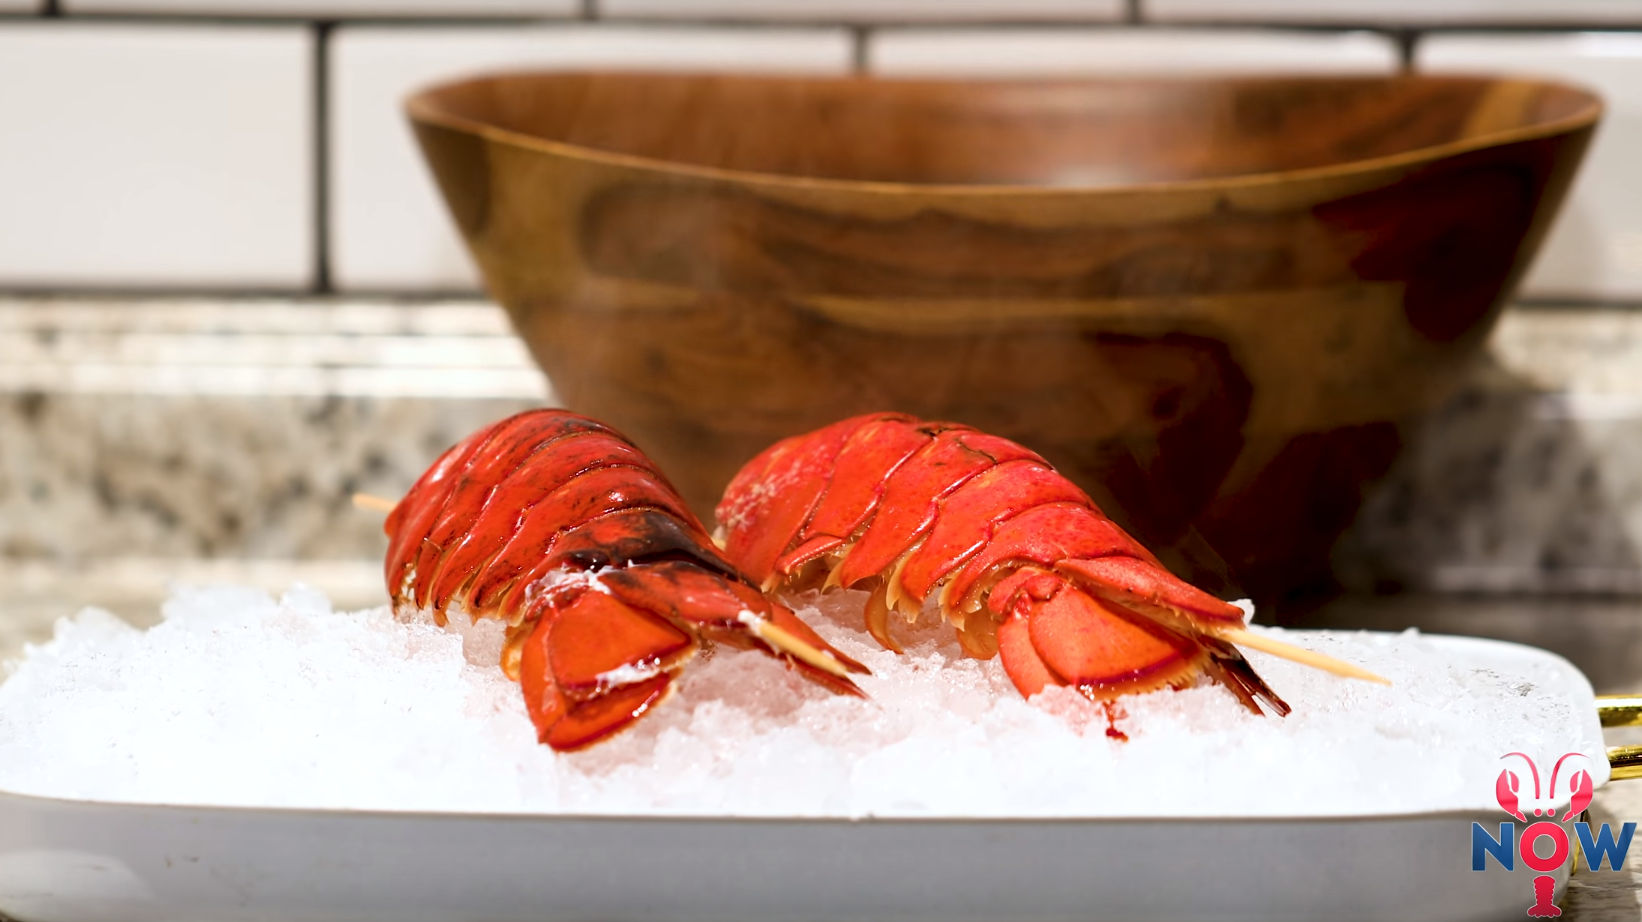 Lobster tail on ice